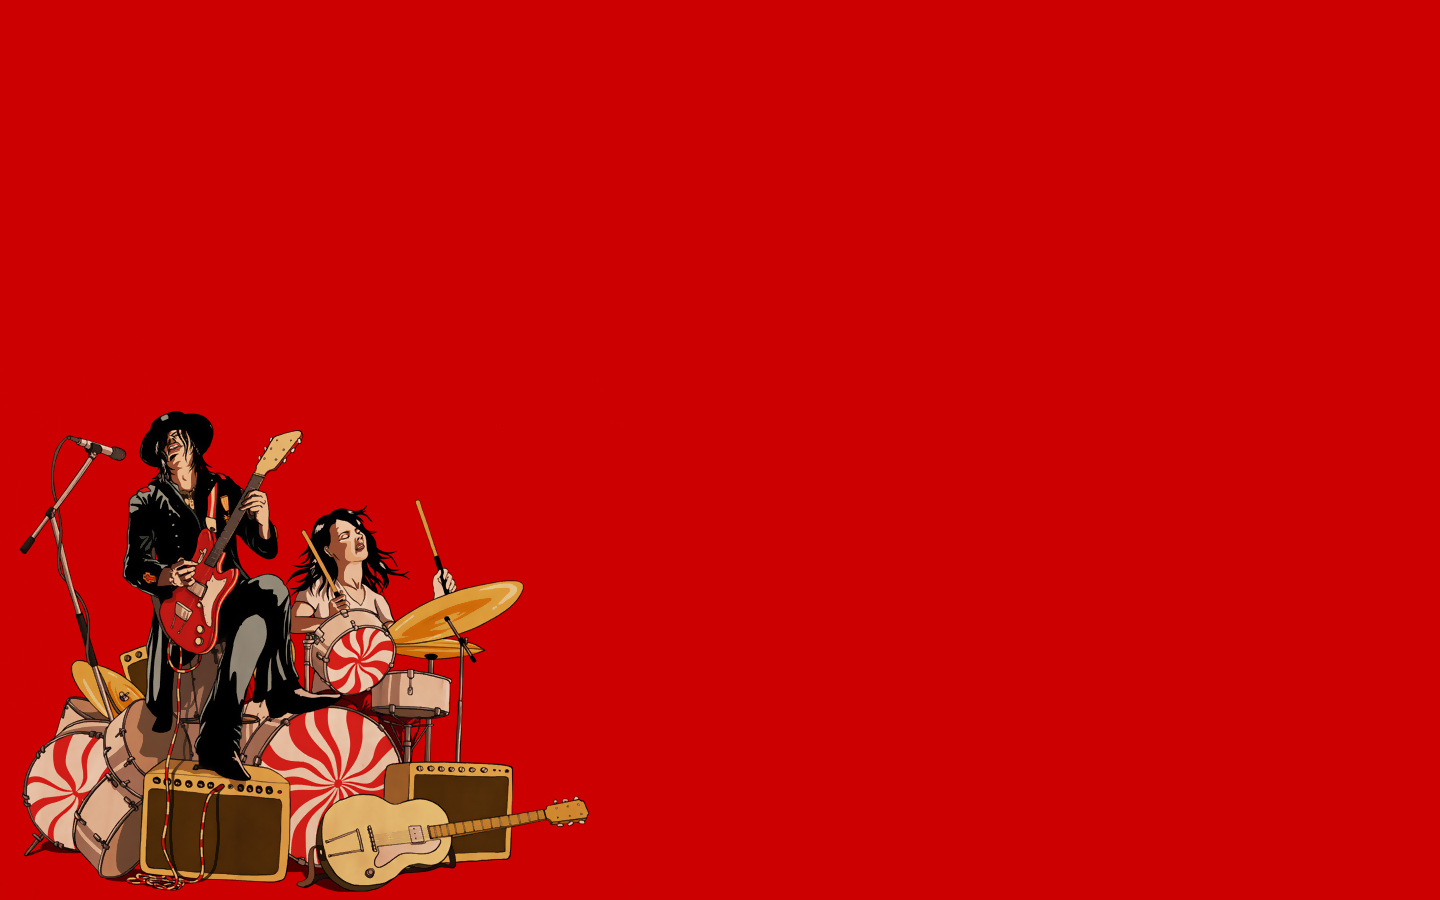 The White Stripes Images HD Wallpaper And Background Photos